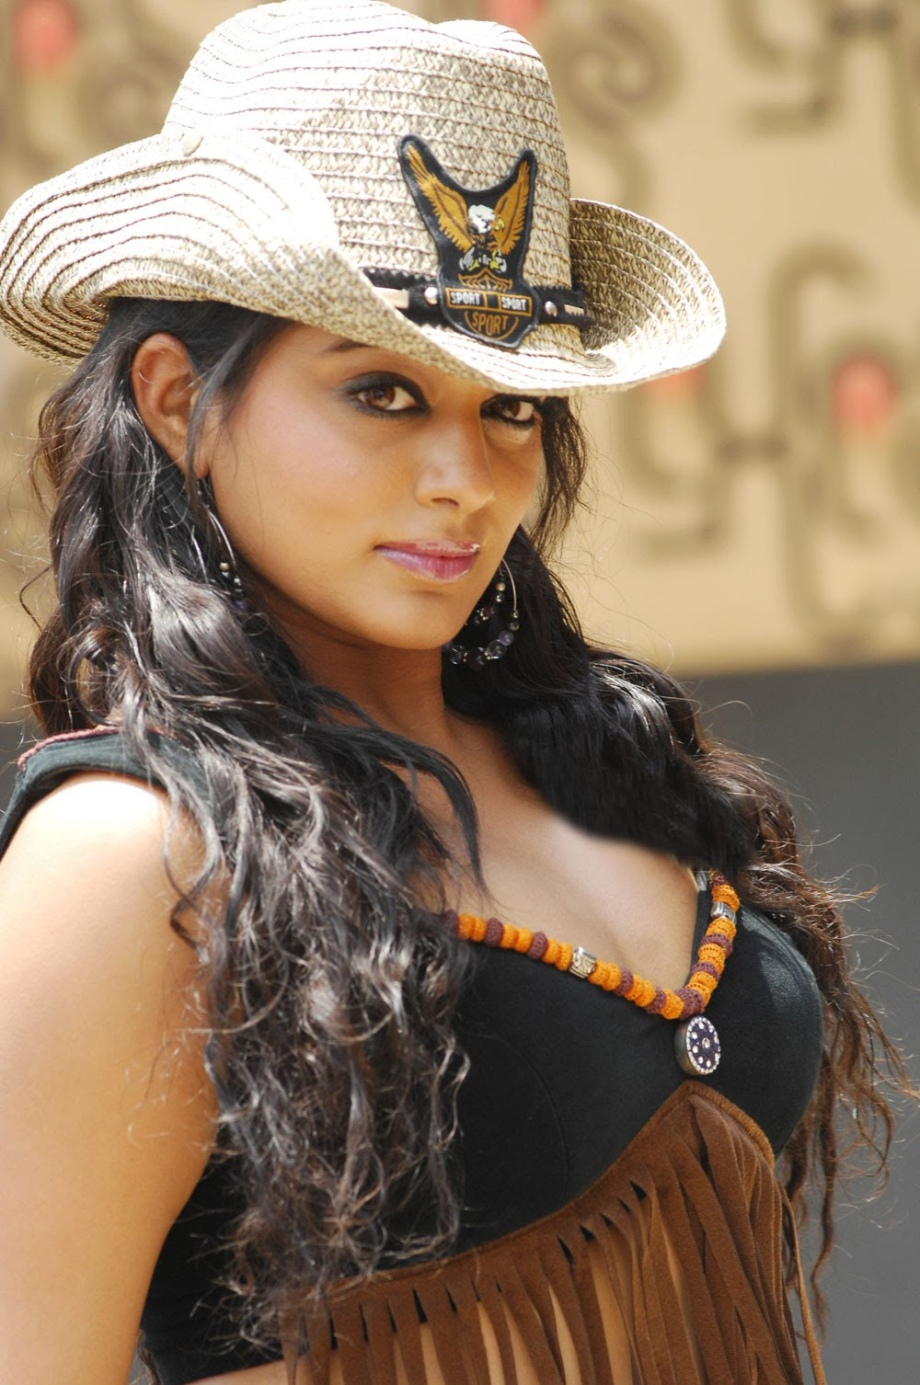 Indian Girl Wallpaper Free Download Cowgirls Hd Wallpapers Wallpaper202